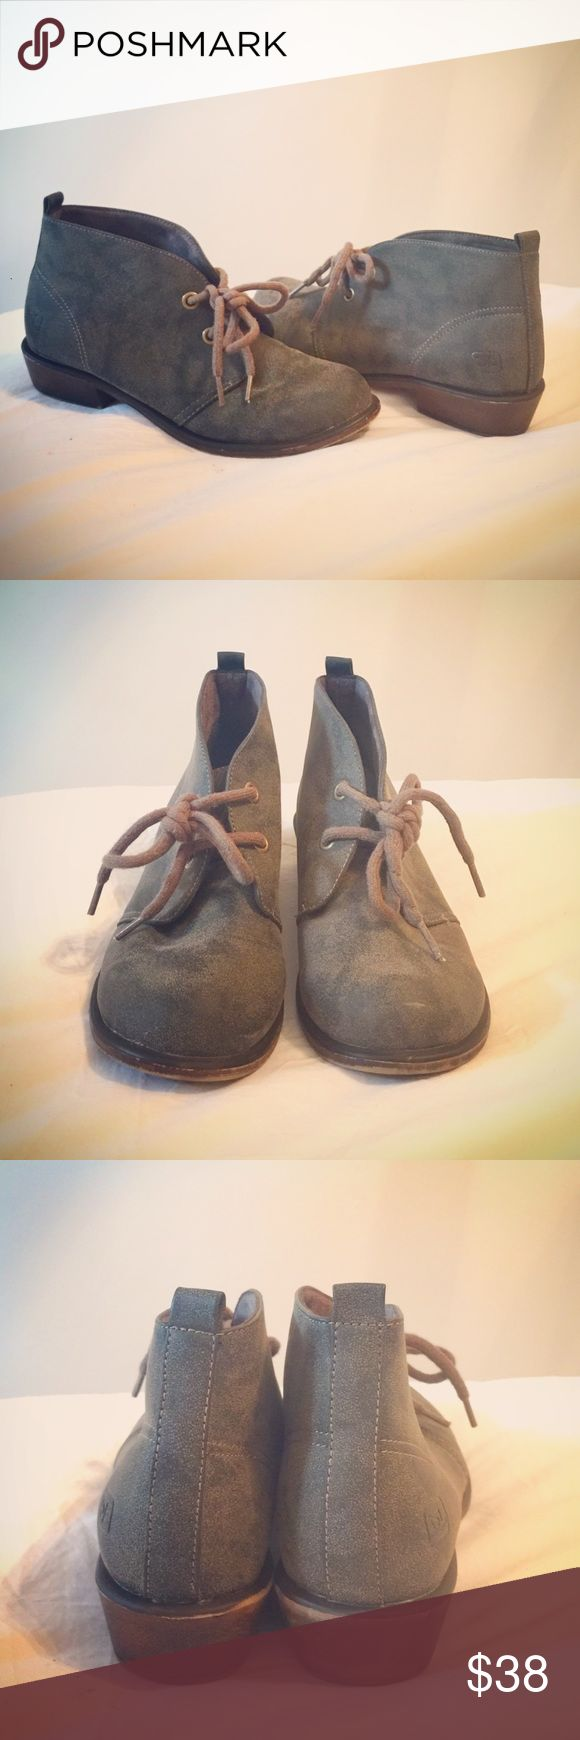 Dirty Laundry Low Chukka Boots Pre-Owned; in great condition. Low ankle boots in forest green/grayish color by Dirty Laundry. Lace-up. Size 7.5. Dirty Laundry Shoes Ankle Boots & Booties